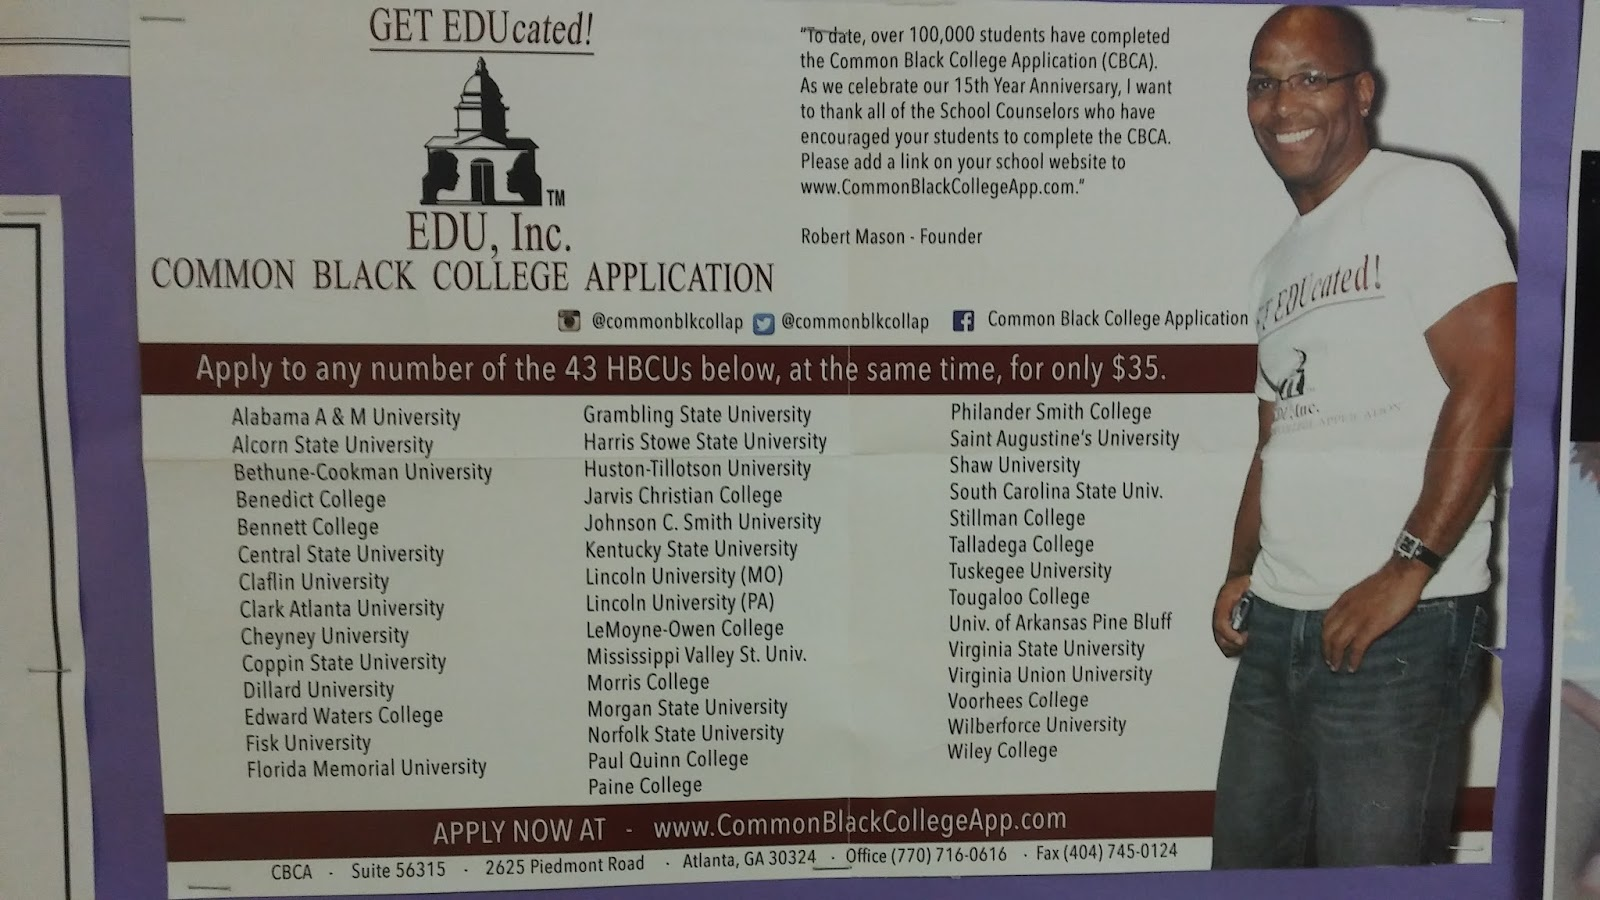 writer essays Historically Black colleges and universities Essay | Essay